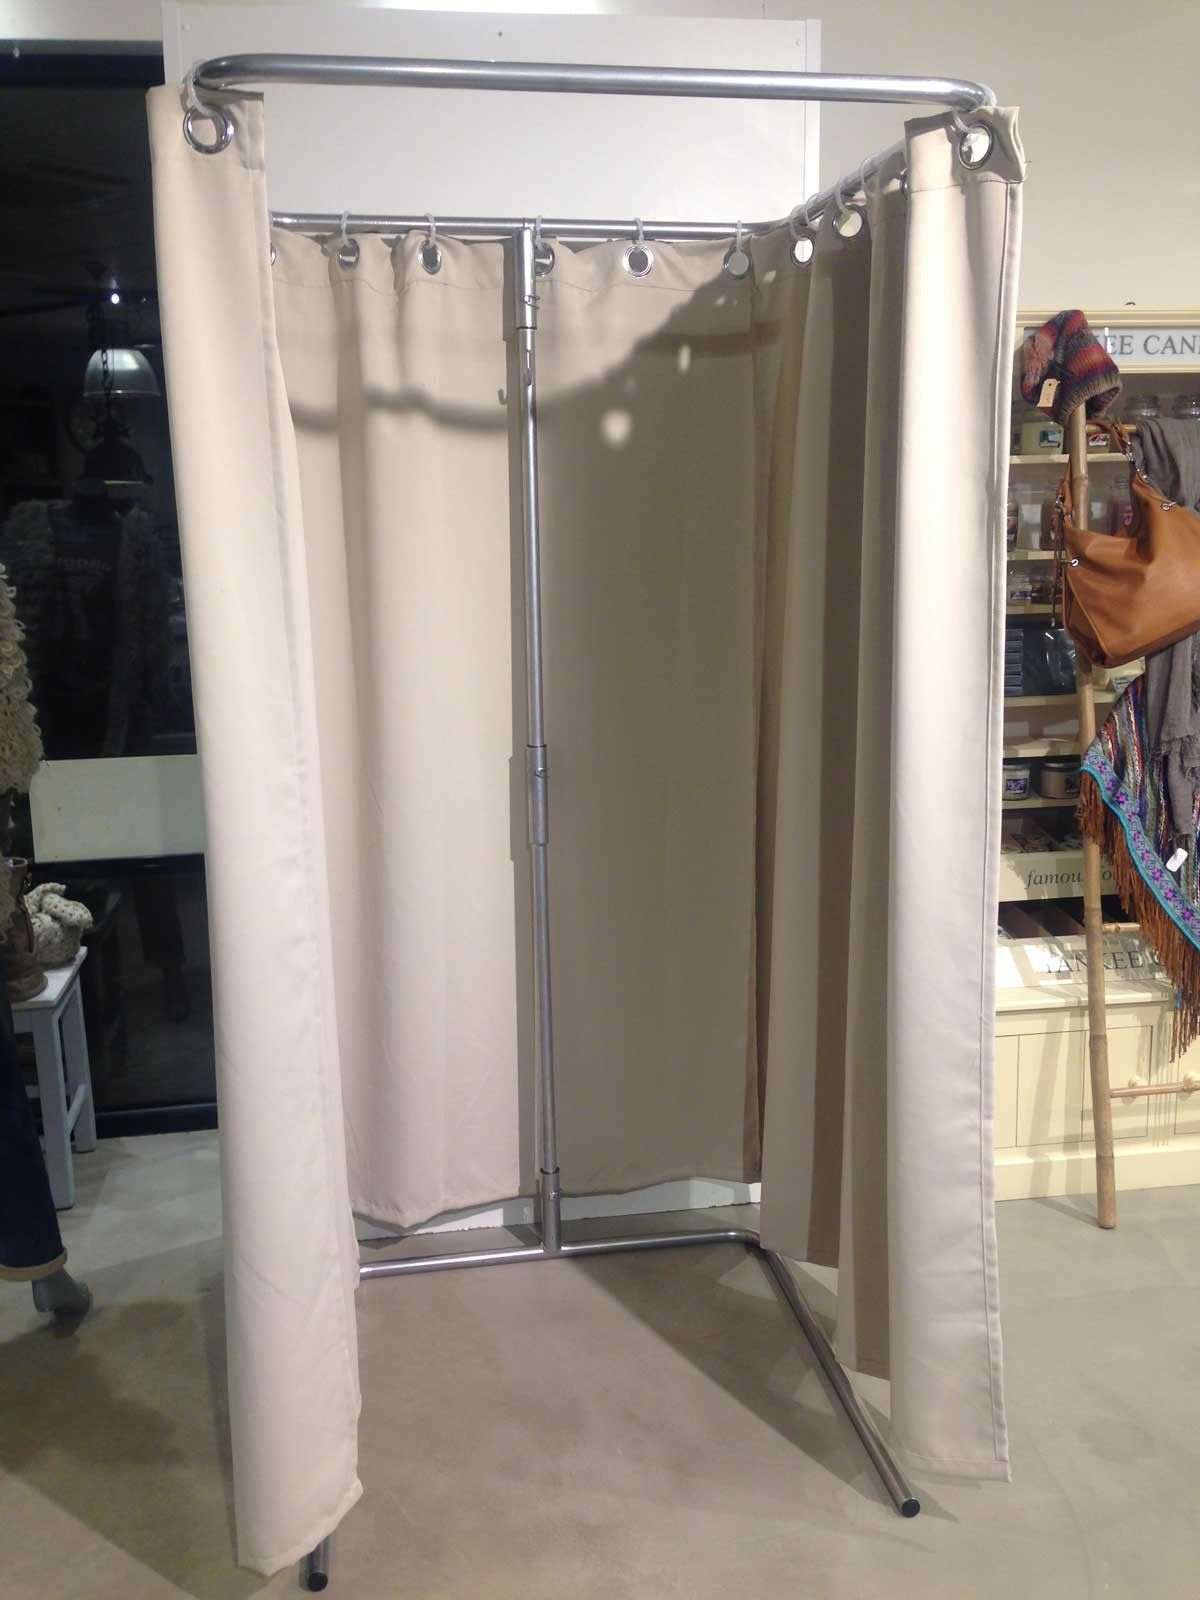 Fitting Room Designs For Retail: Diy Portable Changing Room - Google Search